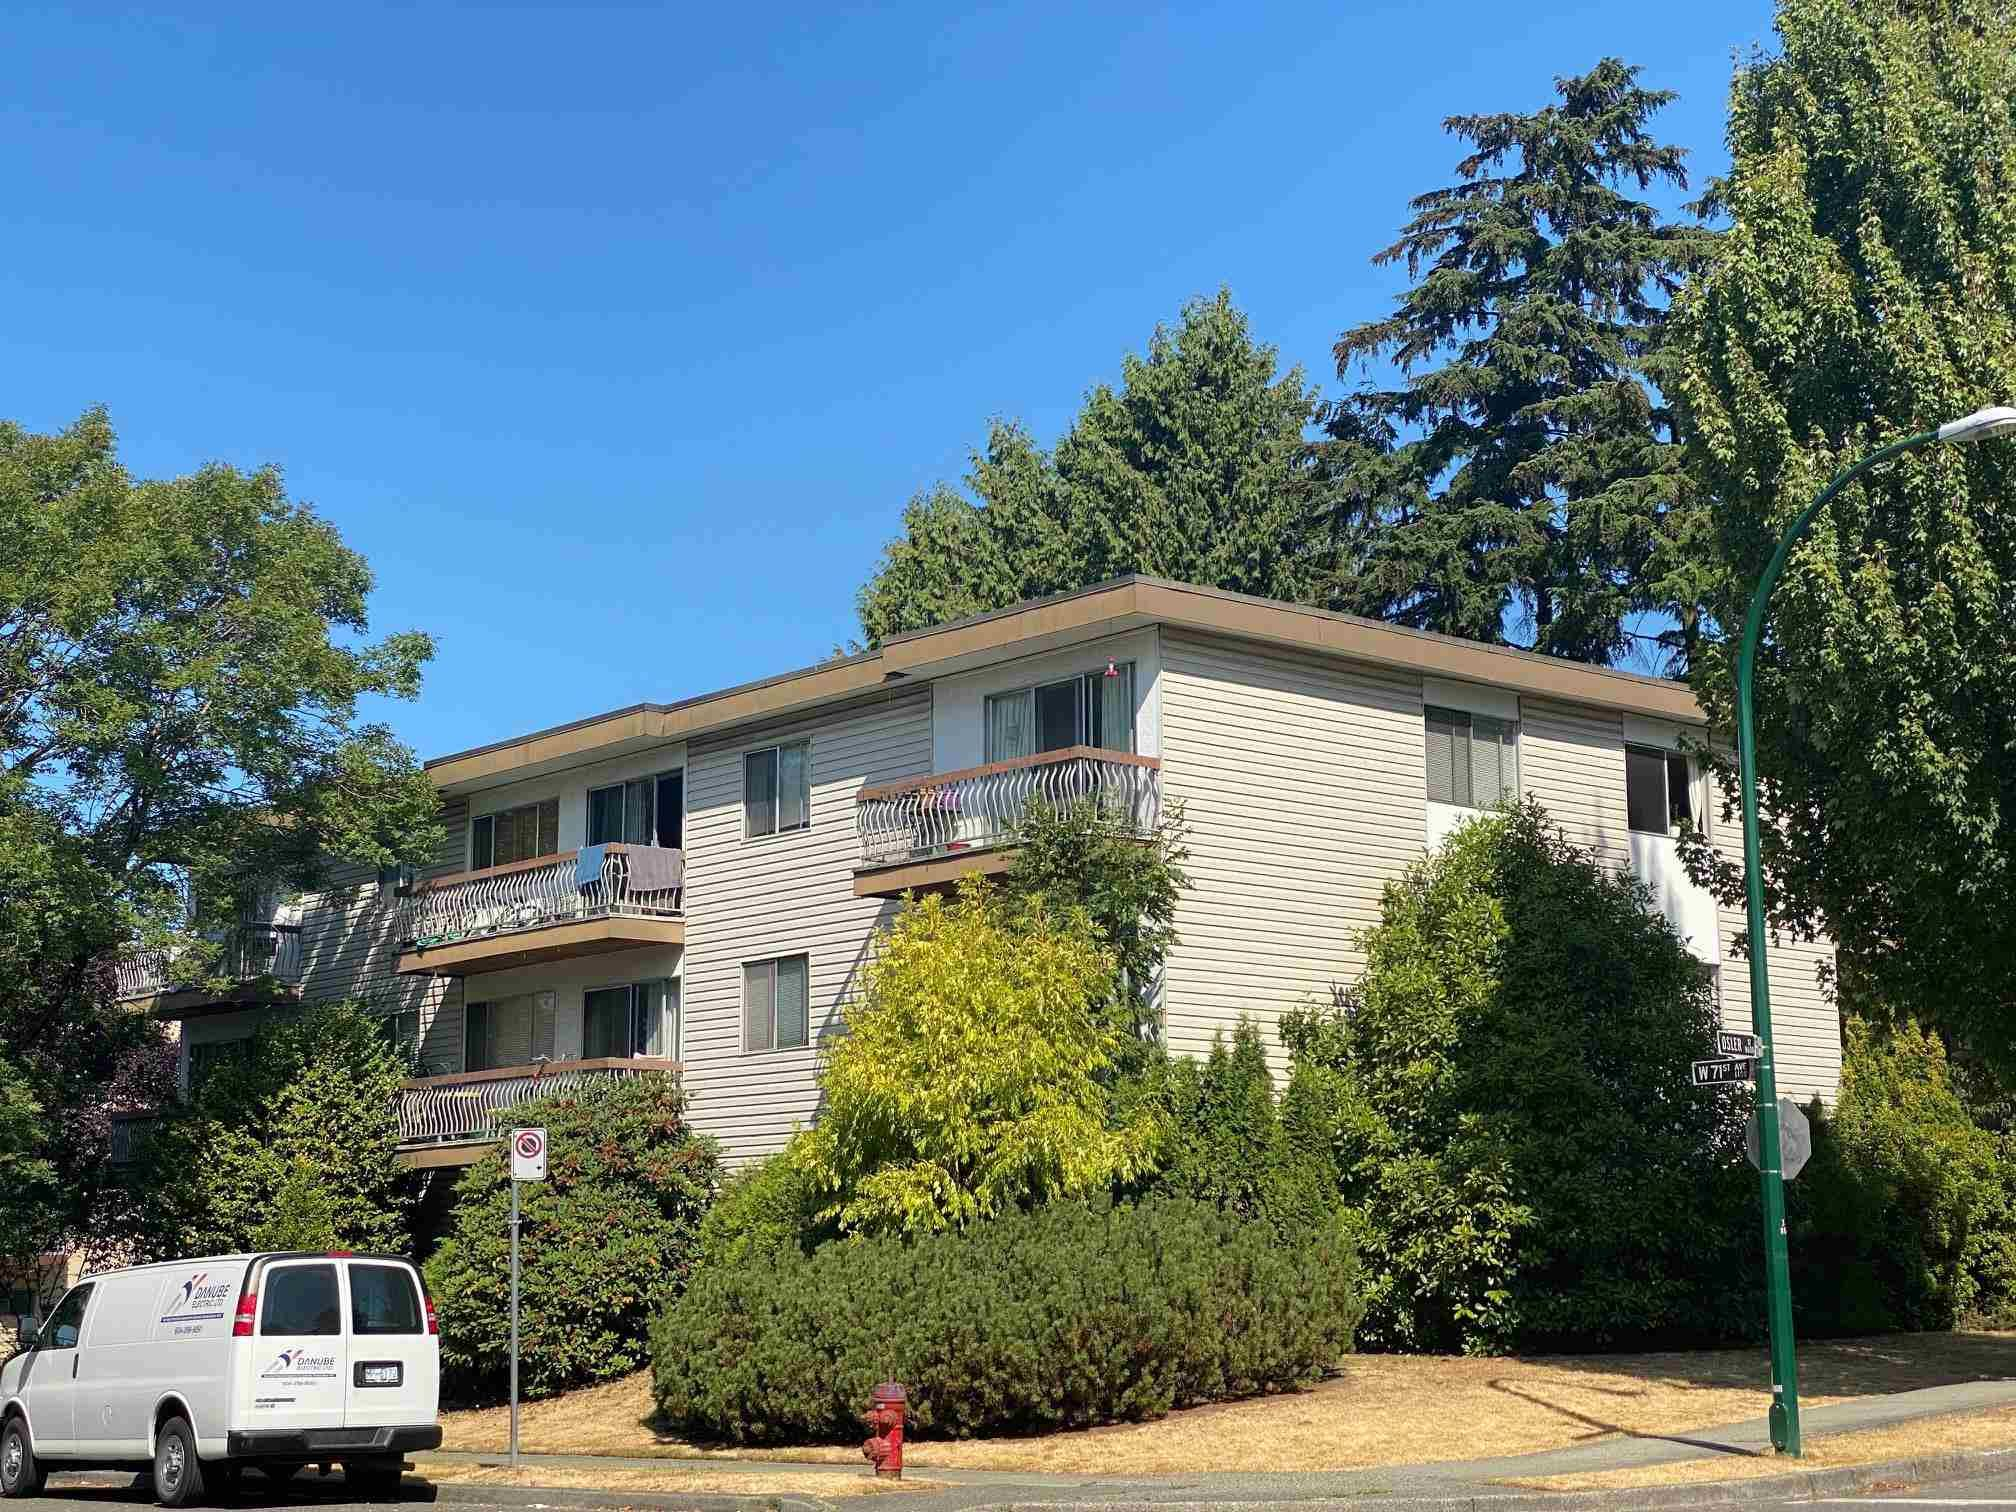 Main Photo: 8685 OSLER Street in Vancouver: Marpole Multi-Family Commercial for sale (Vancouver West)  : MLS®# C8039616